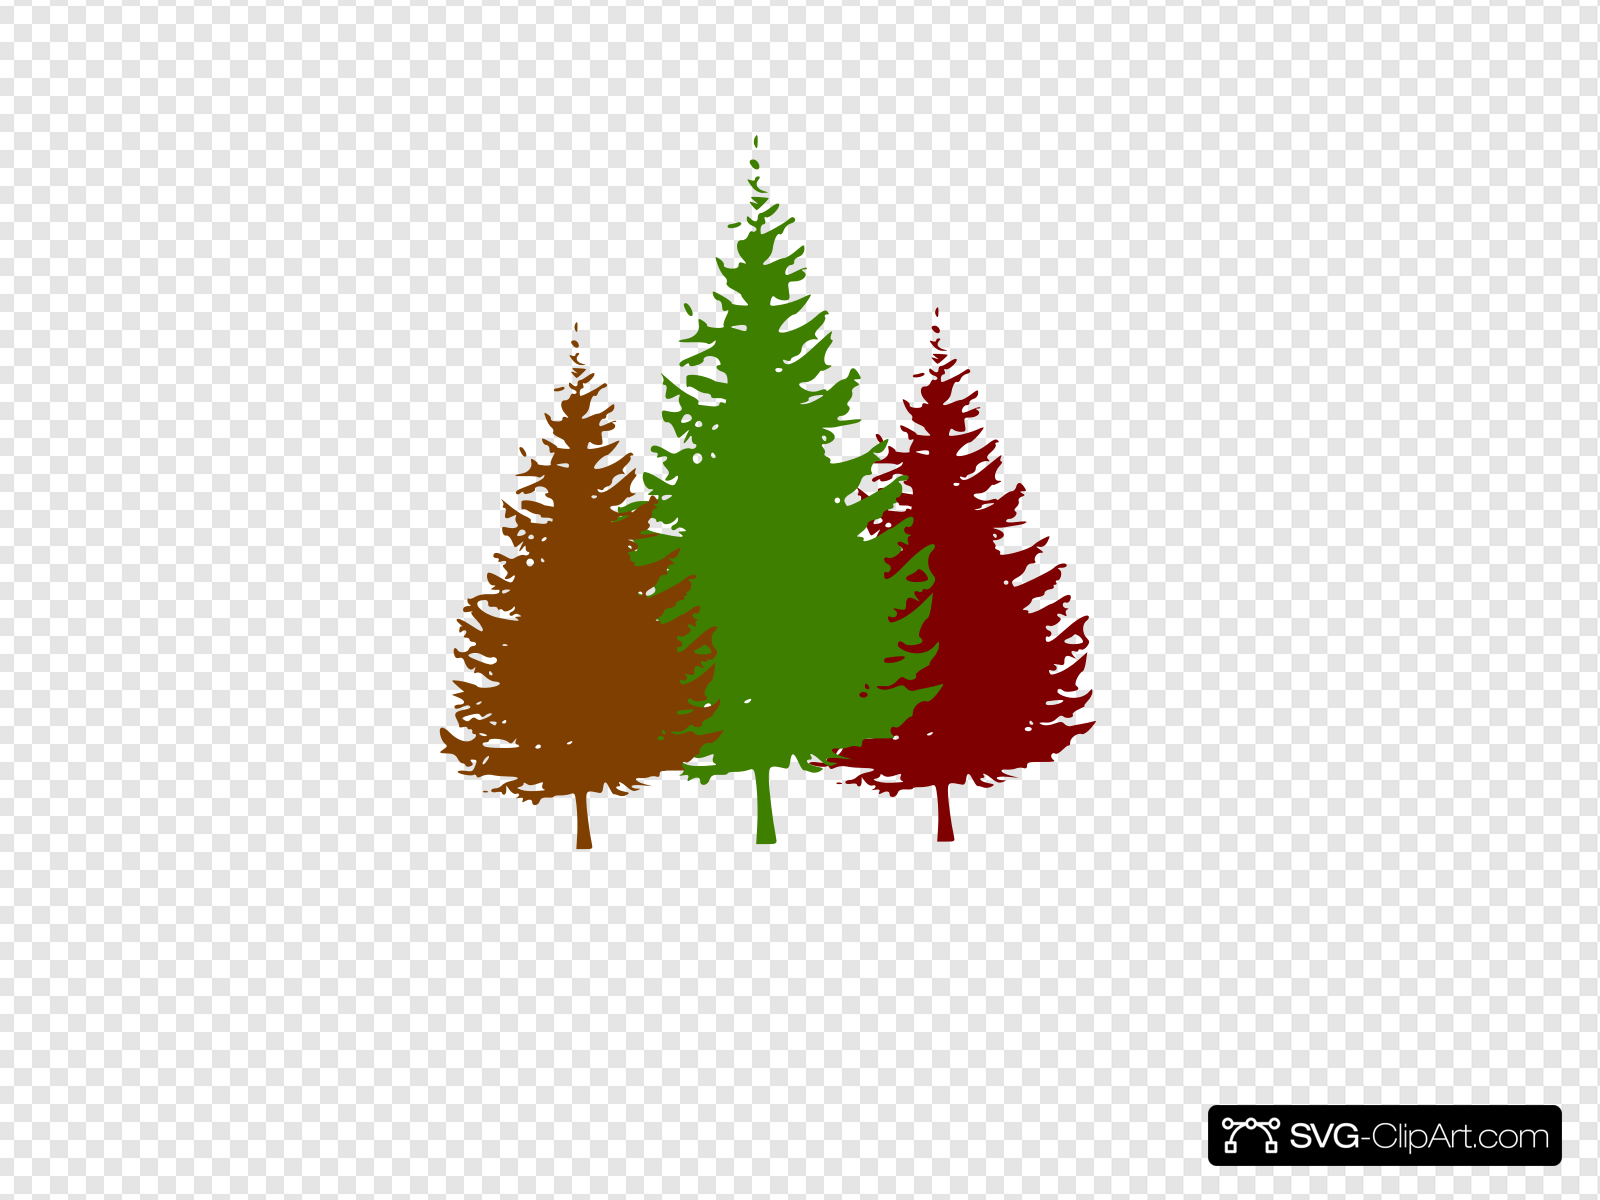 Forest View Logo 3 Clip art, Icon and SVG.